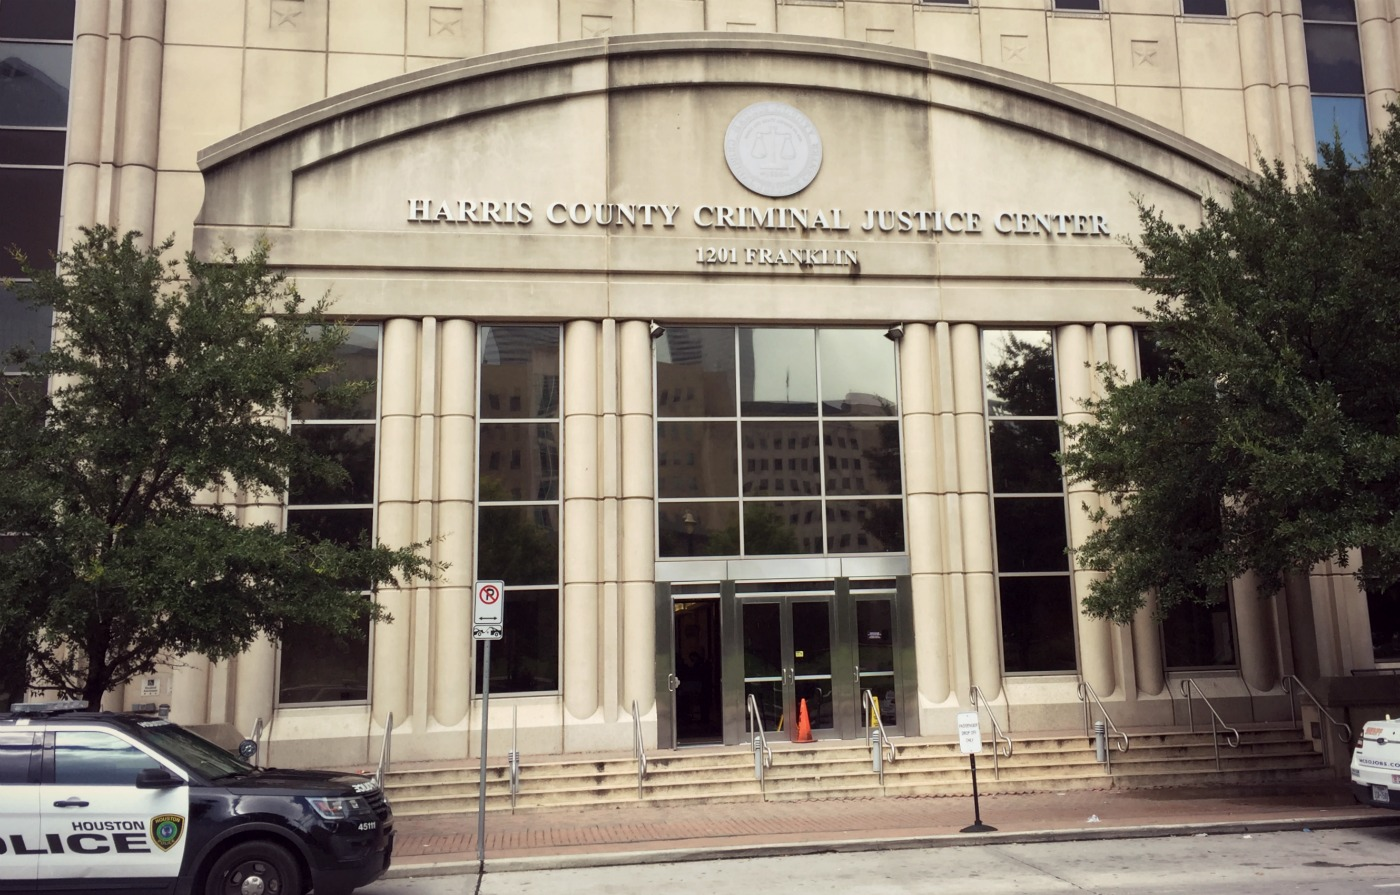 The Harris County Criminal Justice Center in downtown Houston. (Photo: Edel Howlin, Houston Public Media)